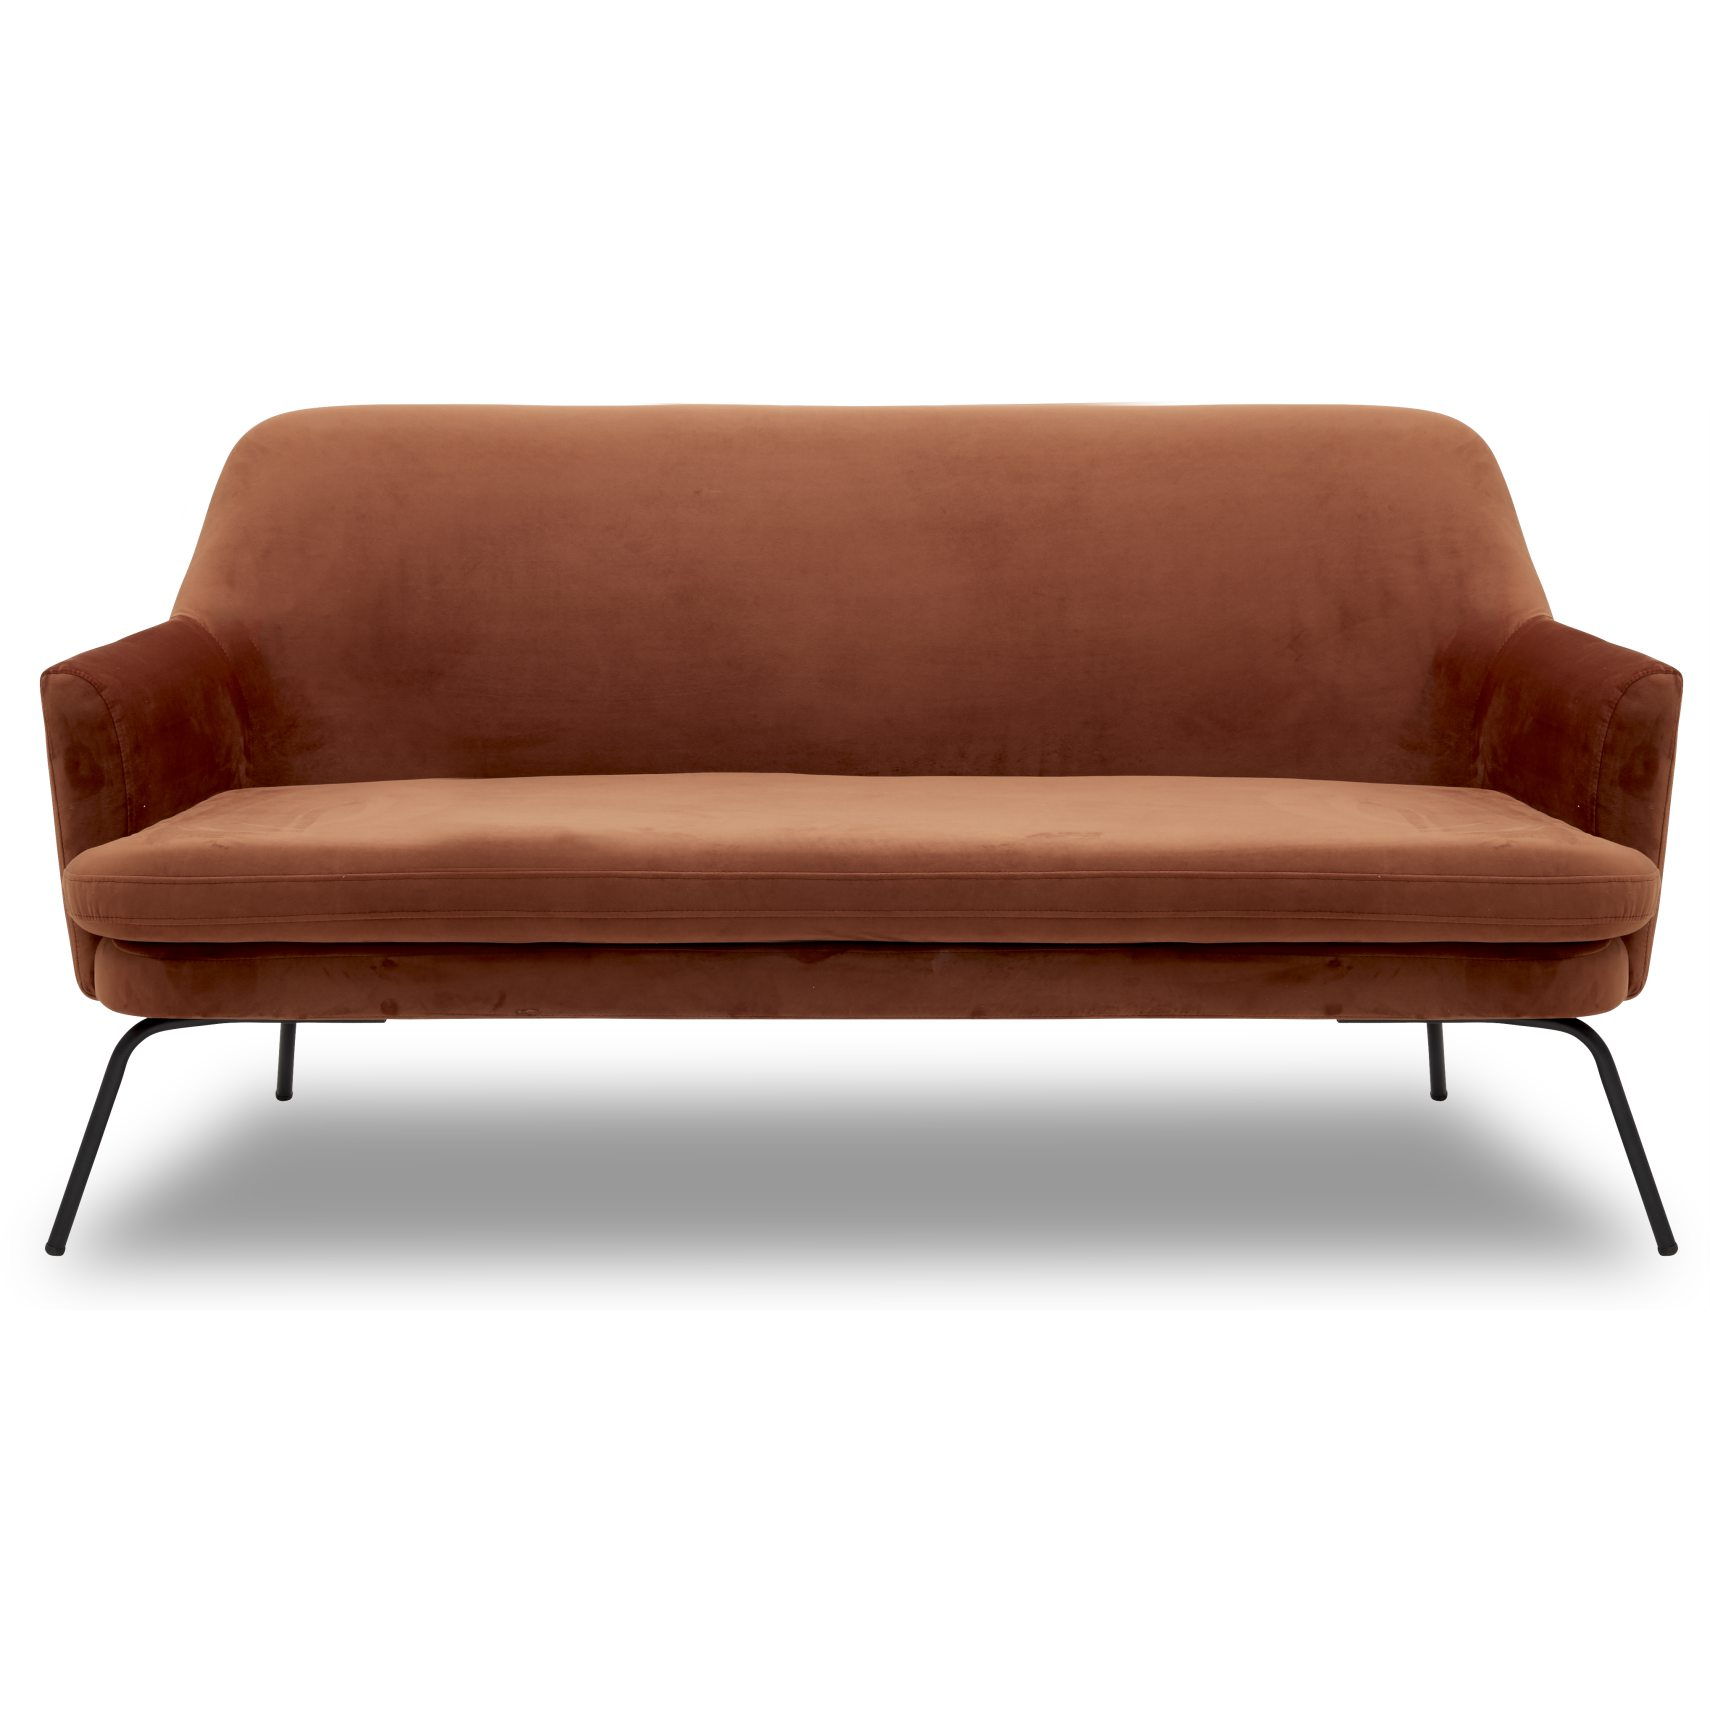 Chisa Sofa - Vic Copper stof og med stel i sort metal